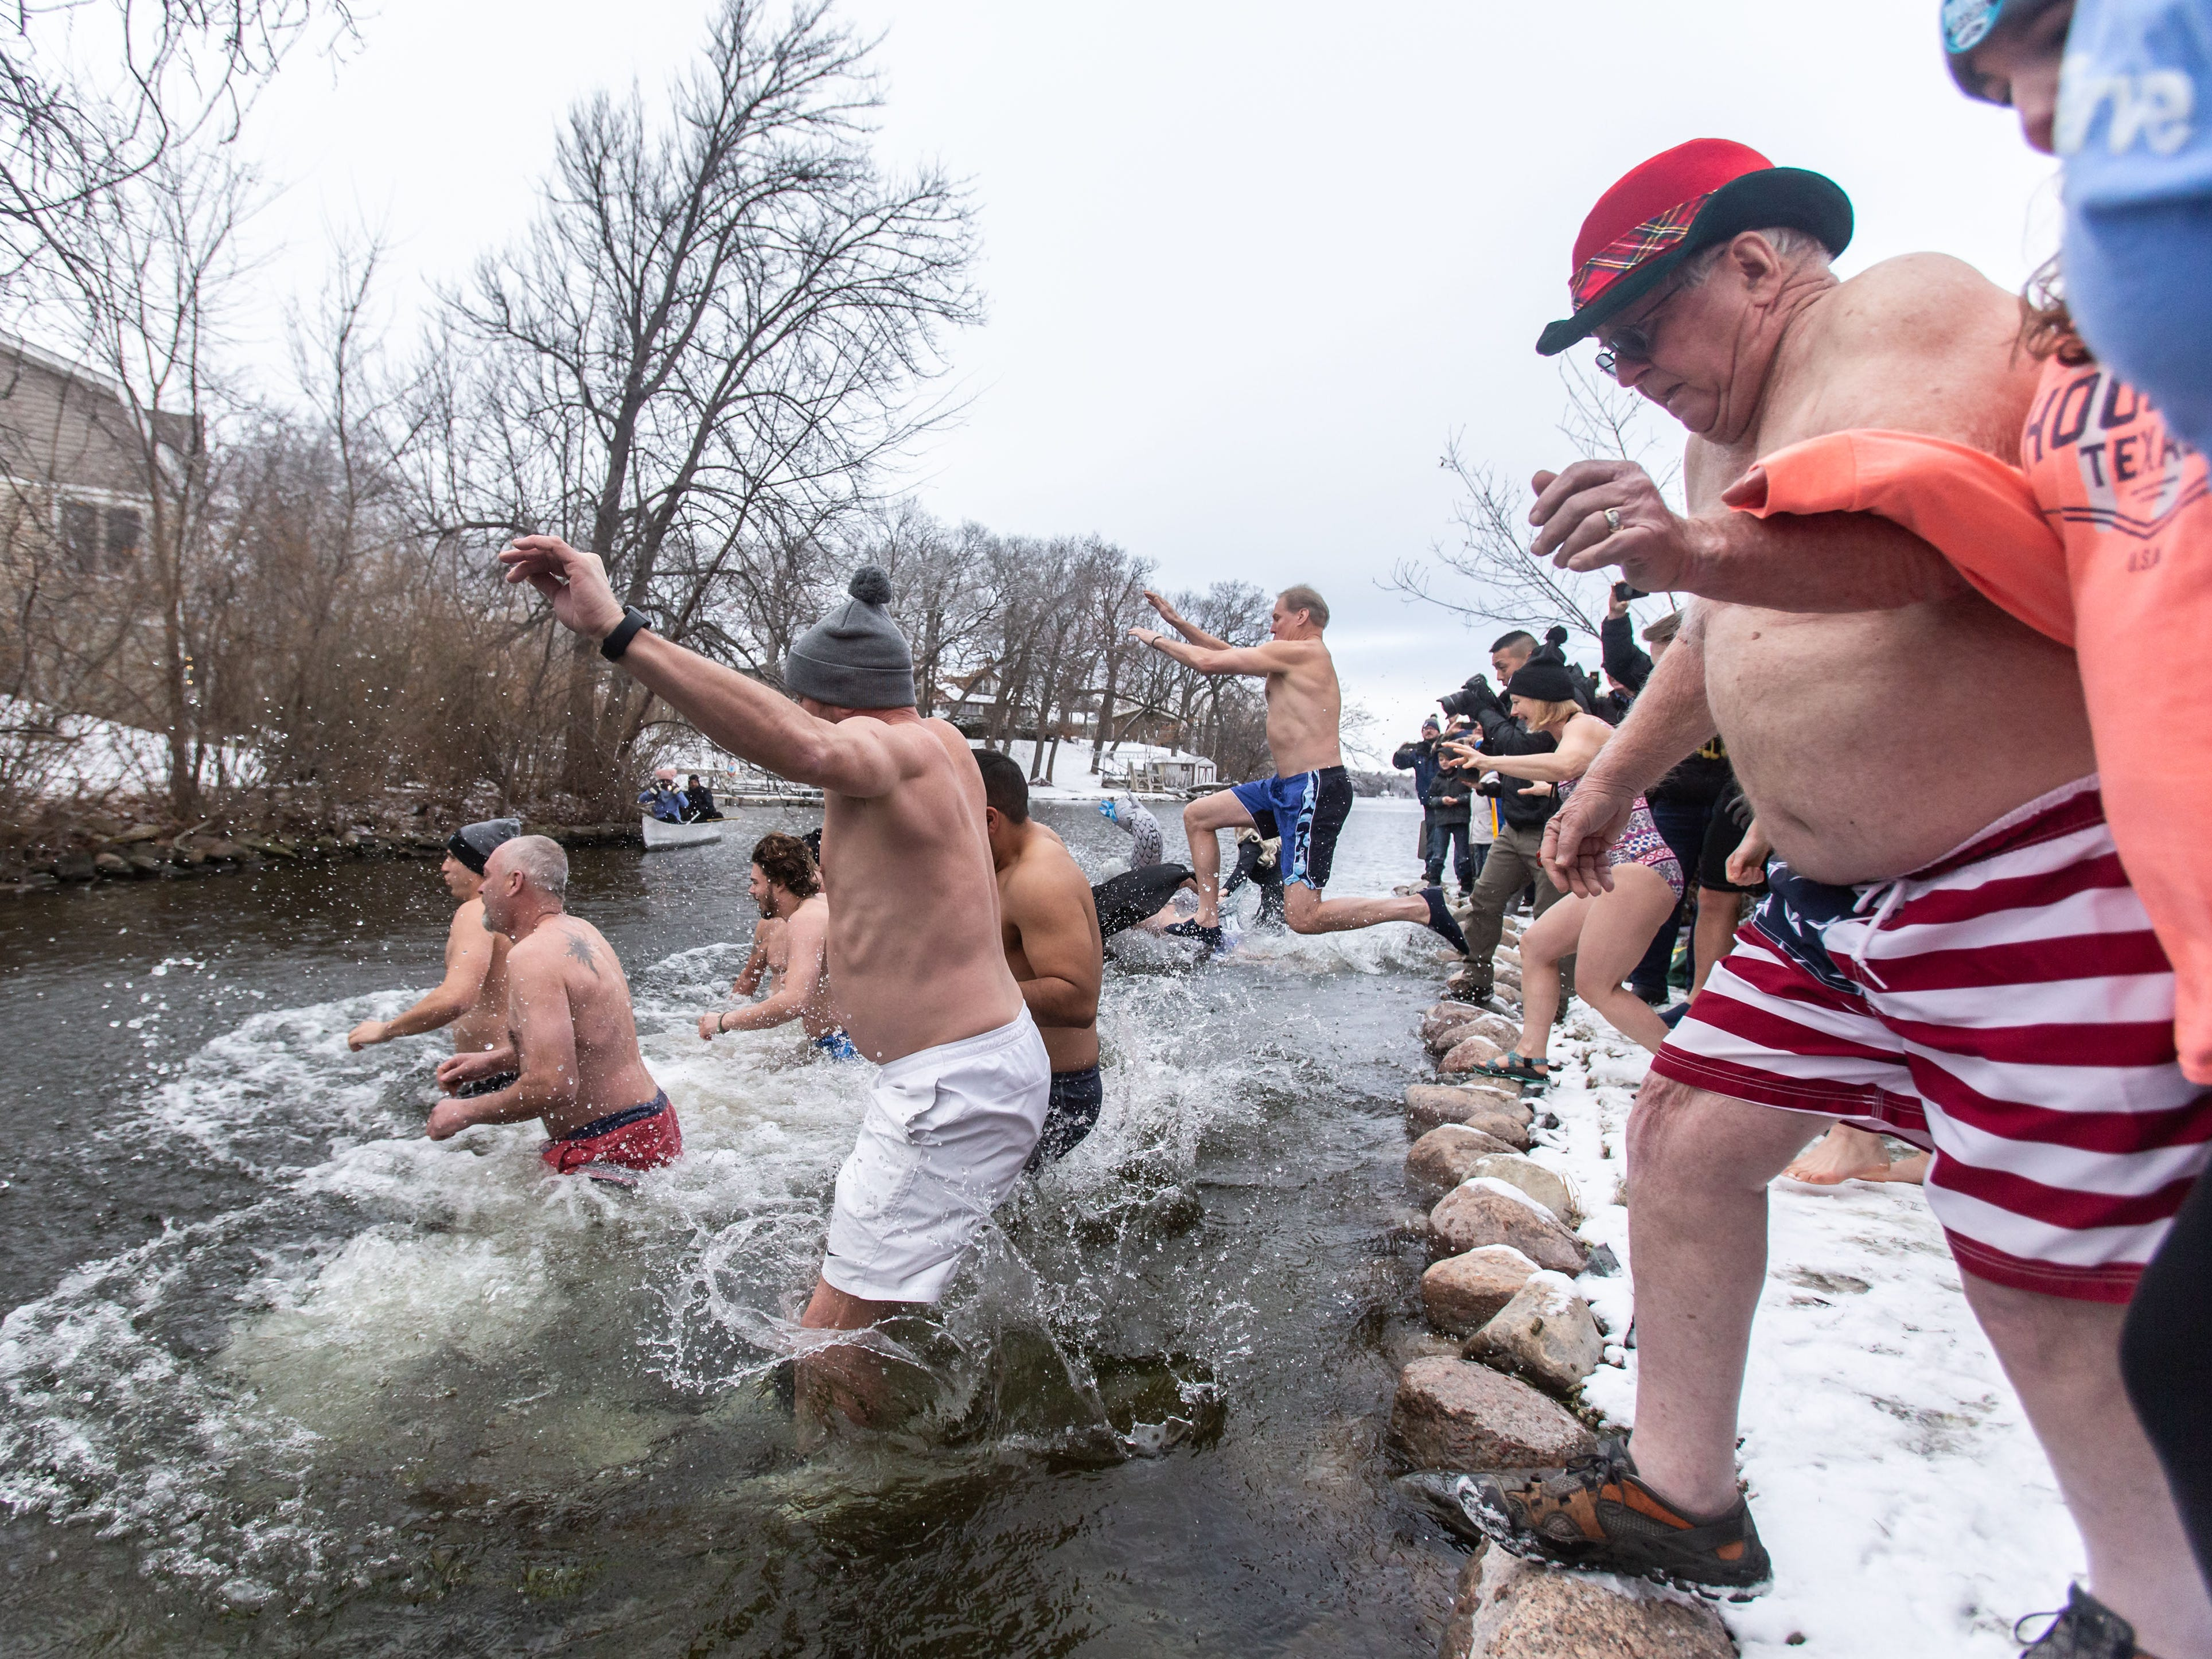 Eighty-year-old James Wirth (right) of Sullivan participates in the annual Polar Plunge at Panga Bar & Grill in Oconomowoc on Tuesday, Jan. 1, 2019. Funds raised from this year's plunge will benefit research efforts of the Alzheimer's Association.